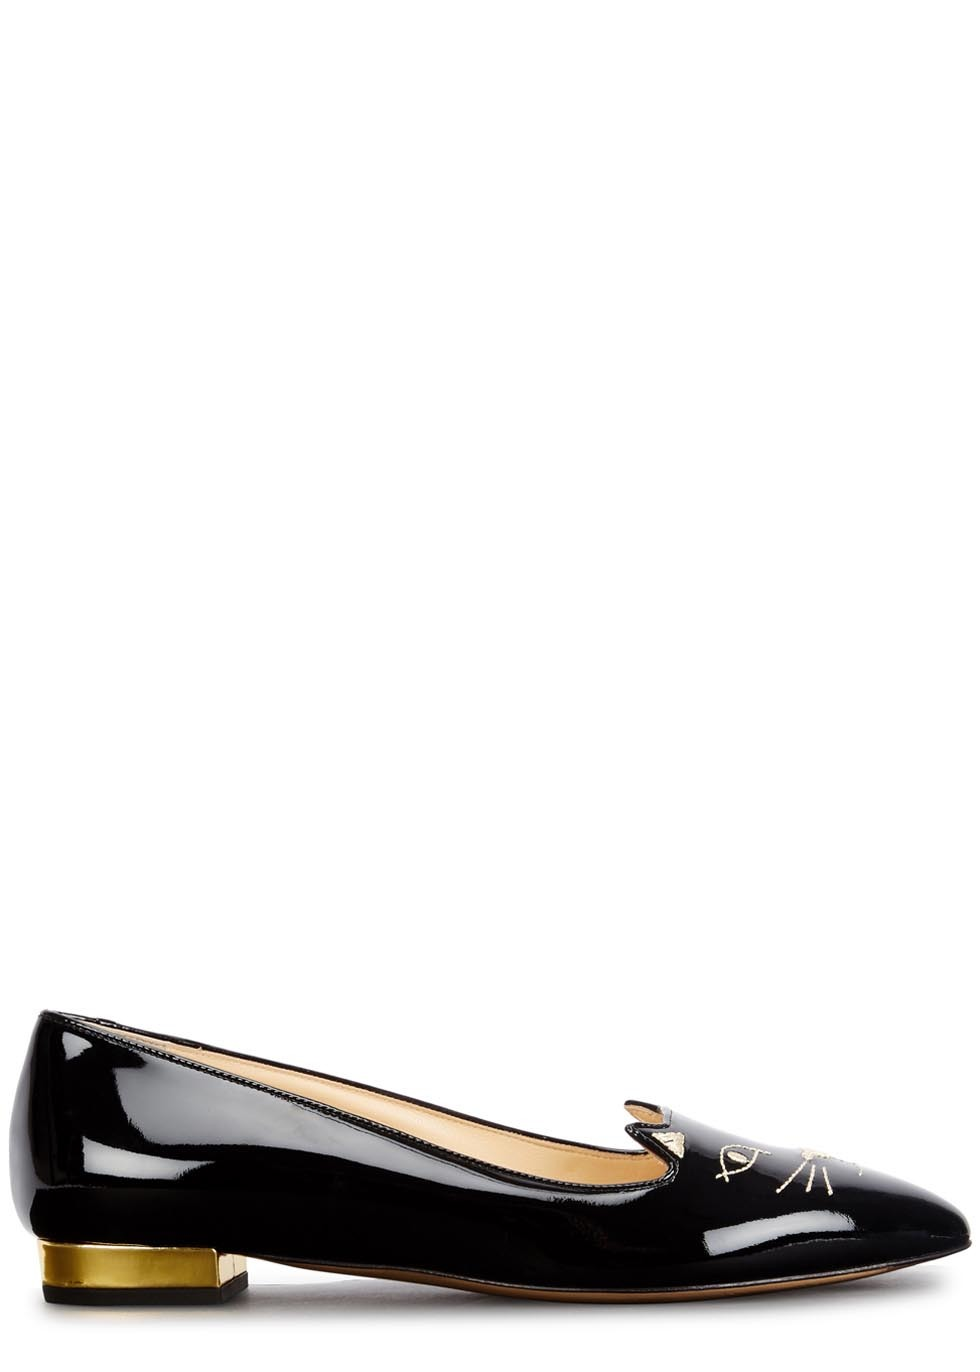 Mid Century Kitty Black Patent Leather Flats - secondary colour: gold; predominant colour: black; occasions: casual, creative work; material: leather; heel height: flat; embellishment: embroidered; toe: round toe; style: ballerinas / pumps; finish: patent; pattern: plain; season: a/w 2015; wardrobe: basic